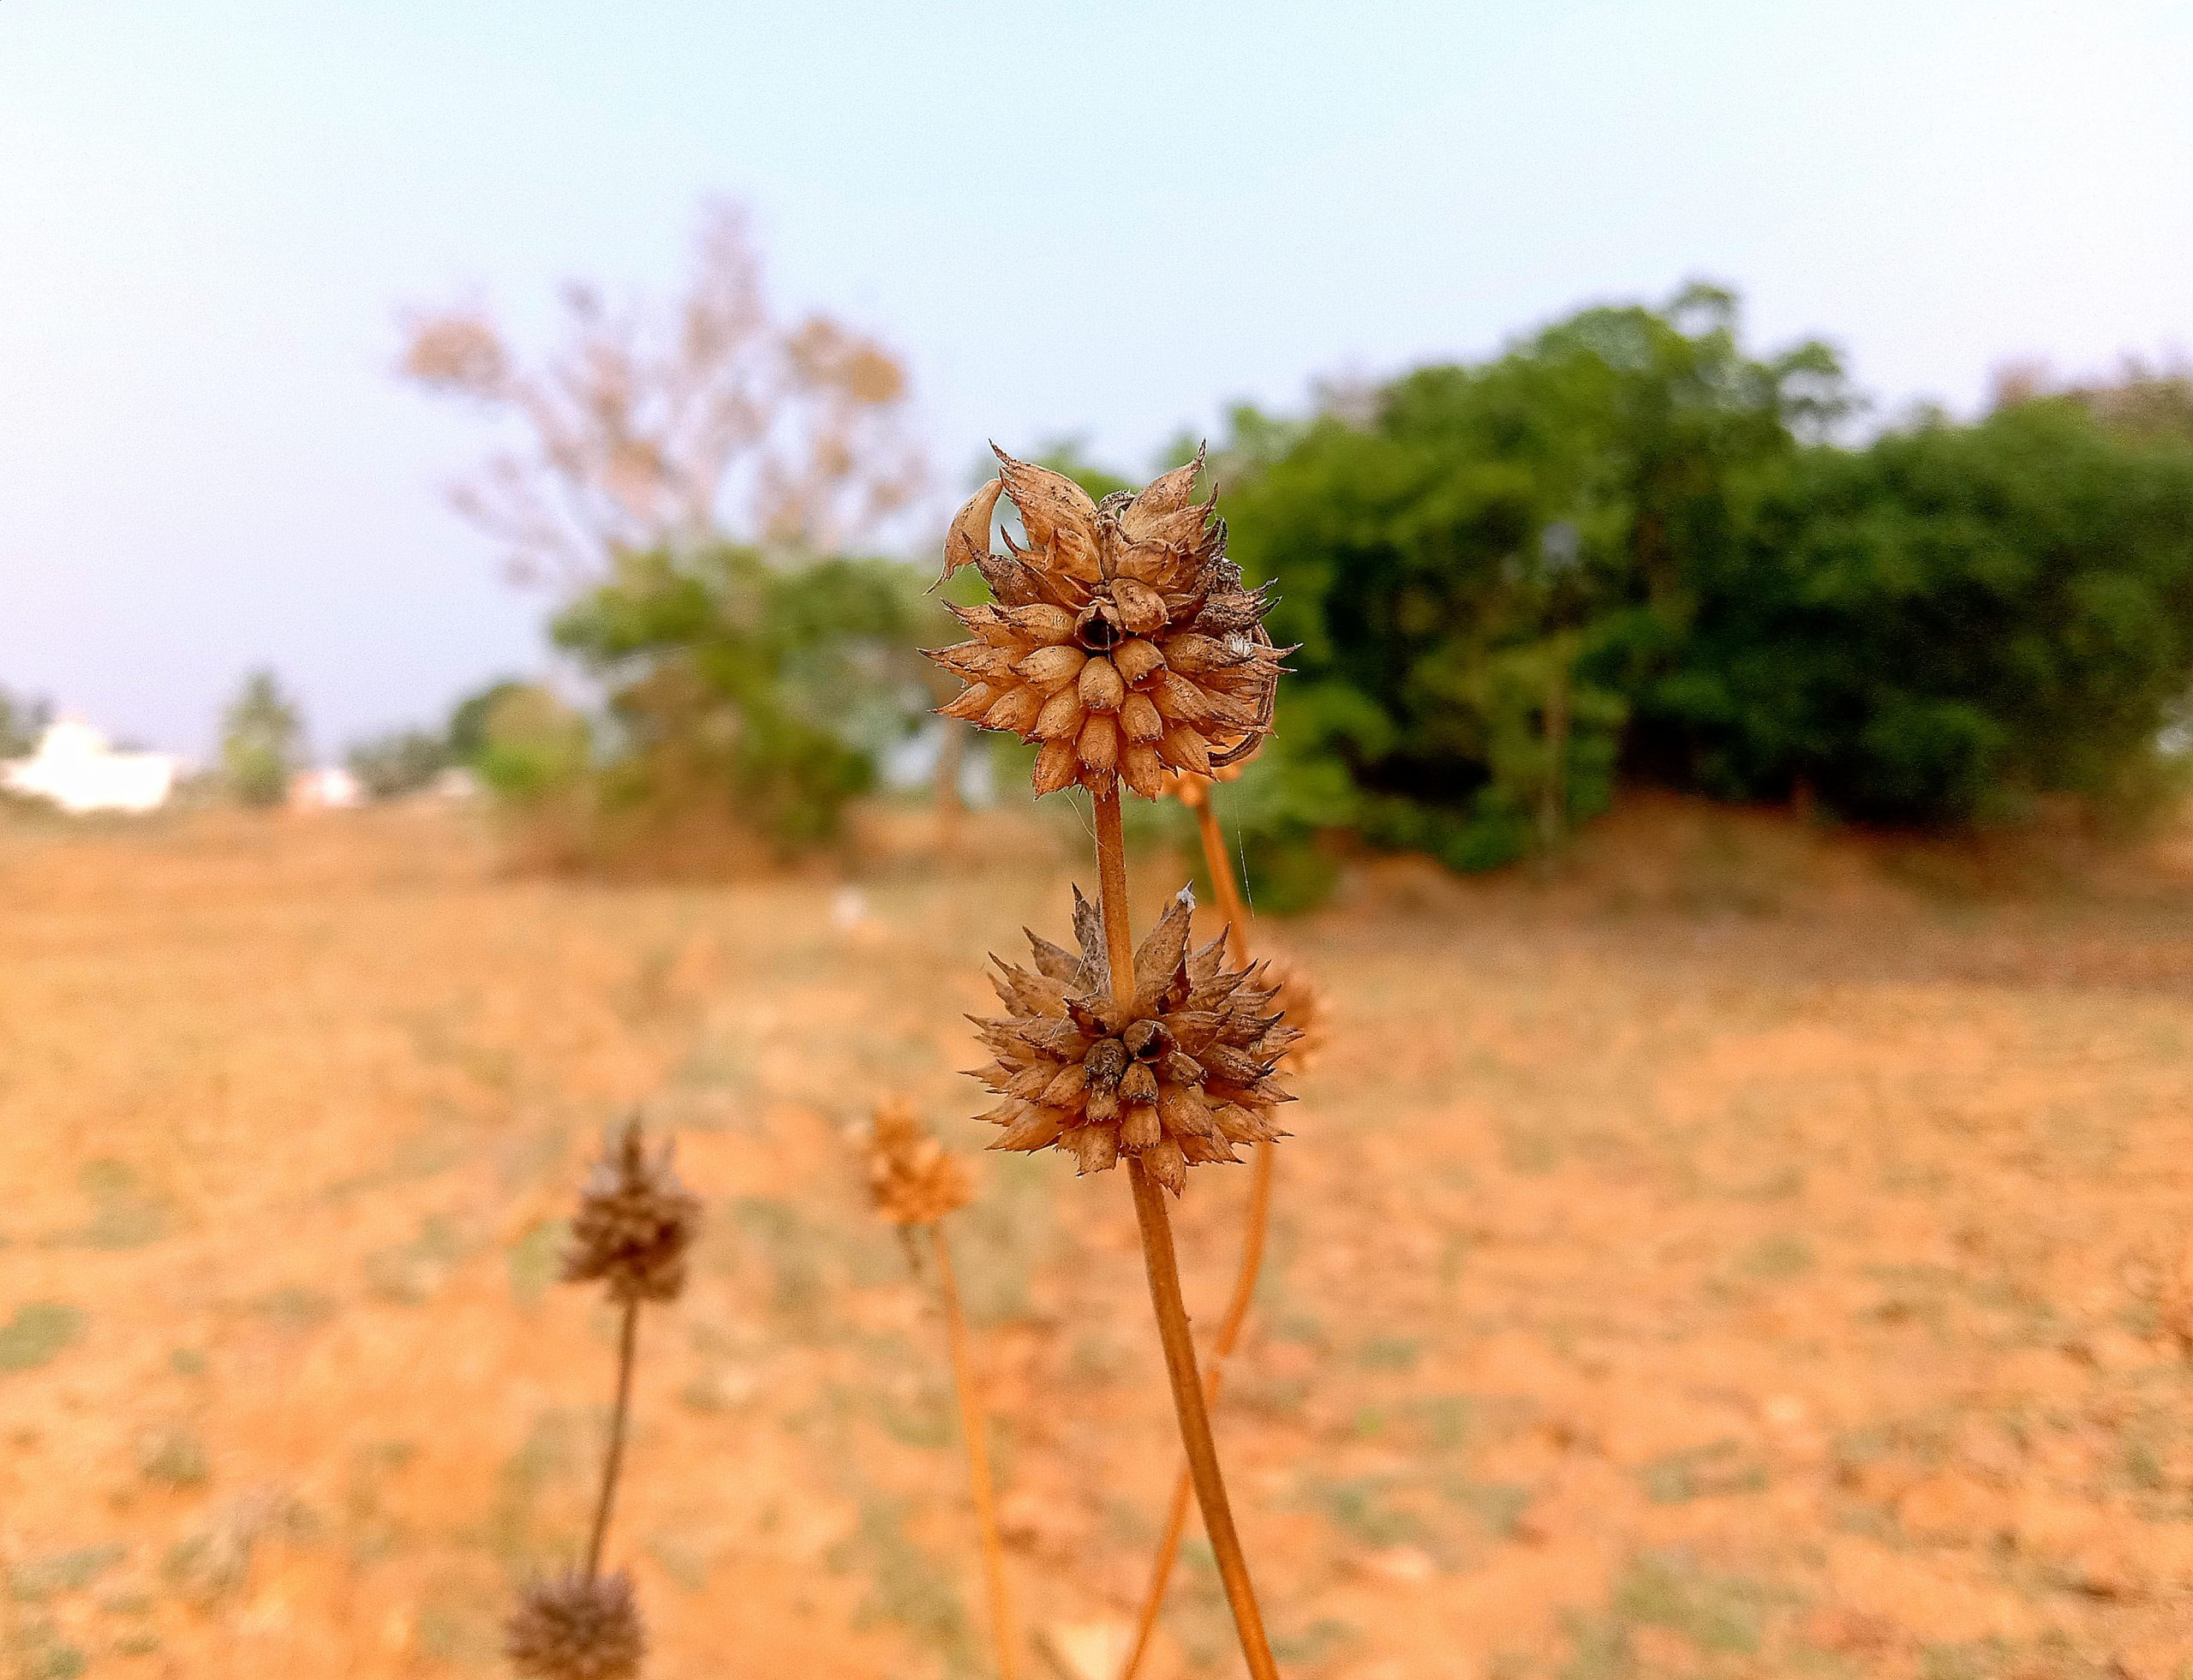 Wild plant in the farm